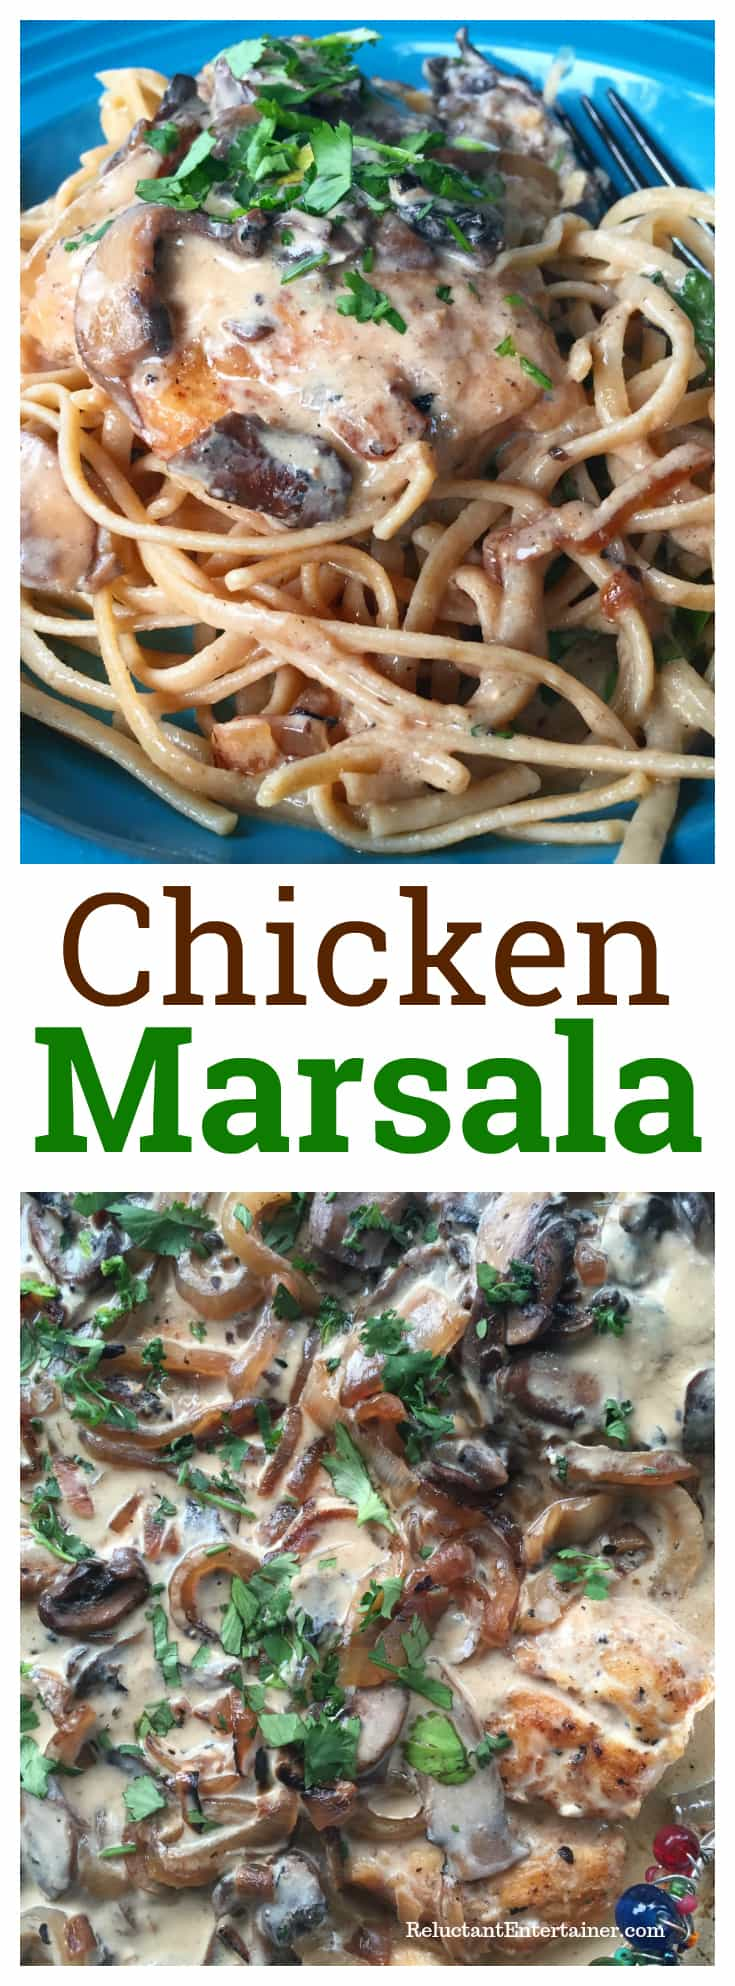 Chicken Marsala Recipe for Casual Entertaining with your Favorite Pasta